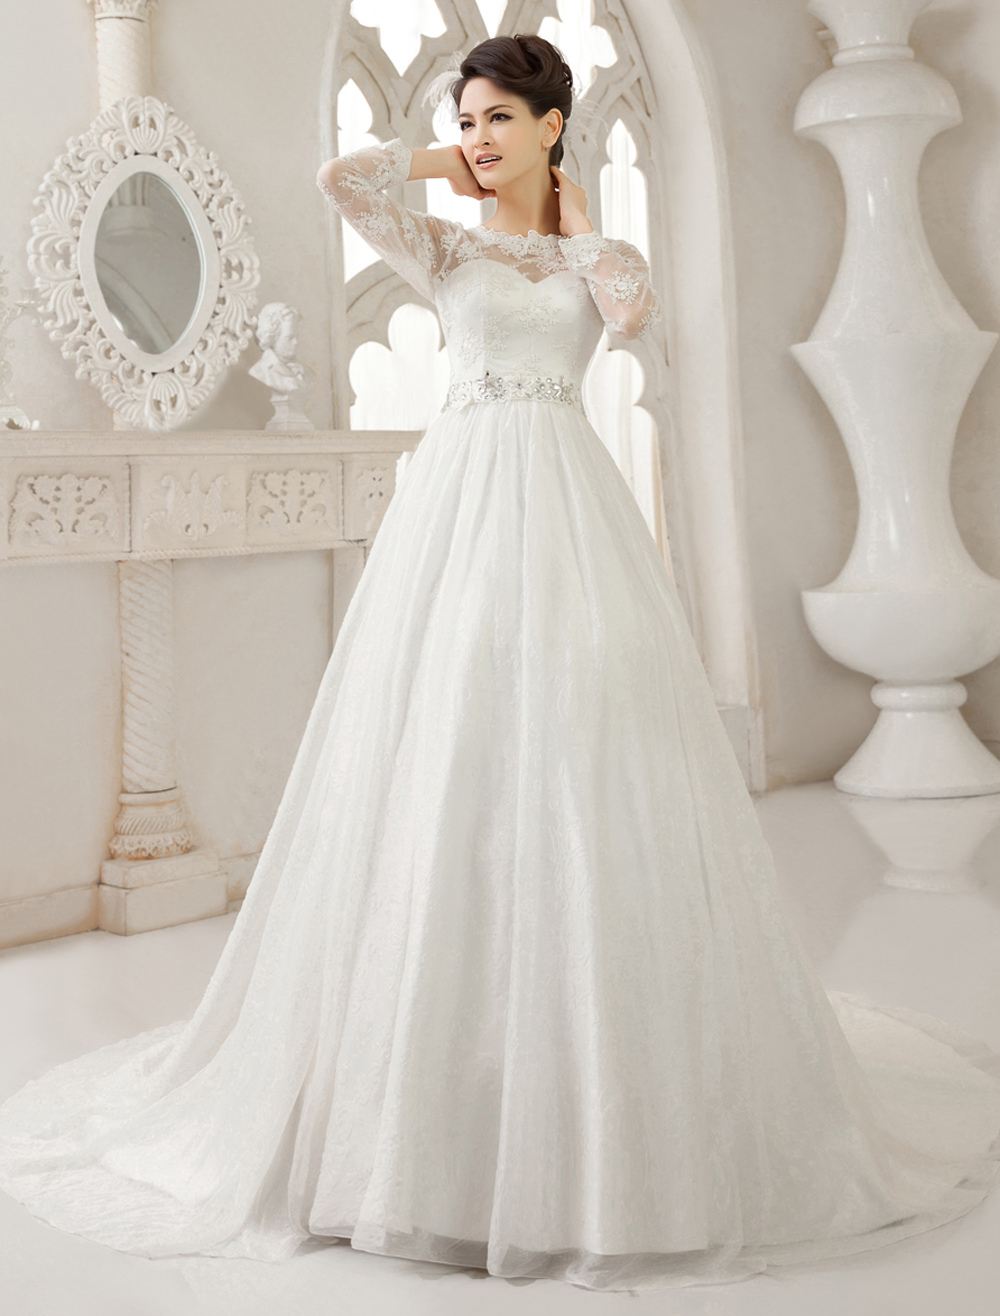 Ivory A-line Jewel Neck Lace Sweep Bride's Wedding Dress  Milanoo